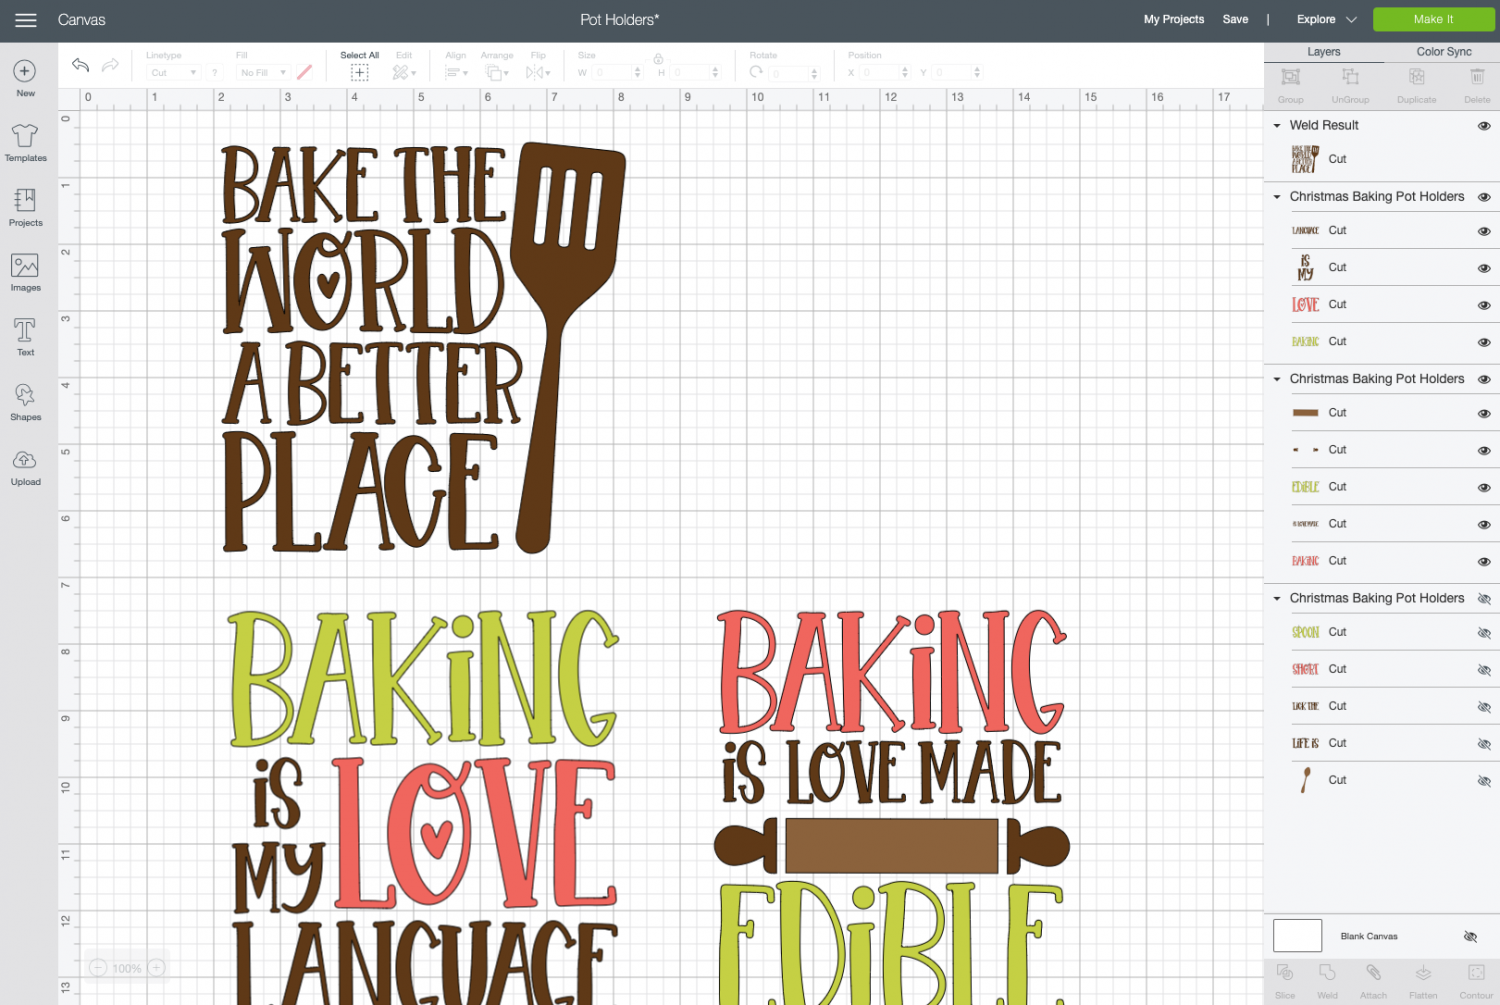 Cricut Design Space: Bake the World a Better Place image welded